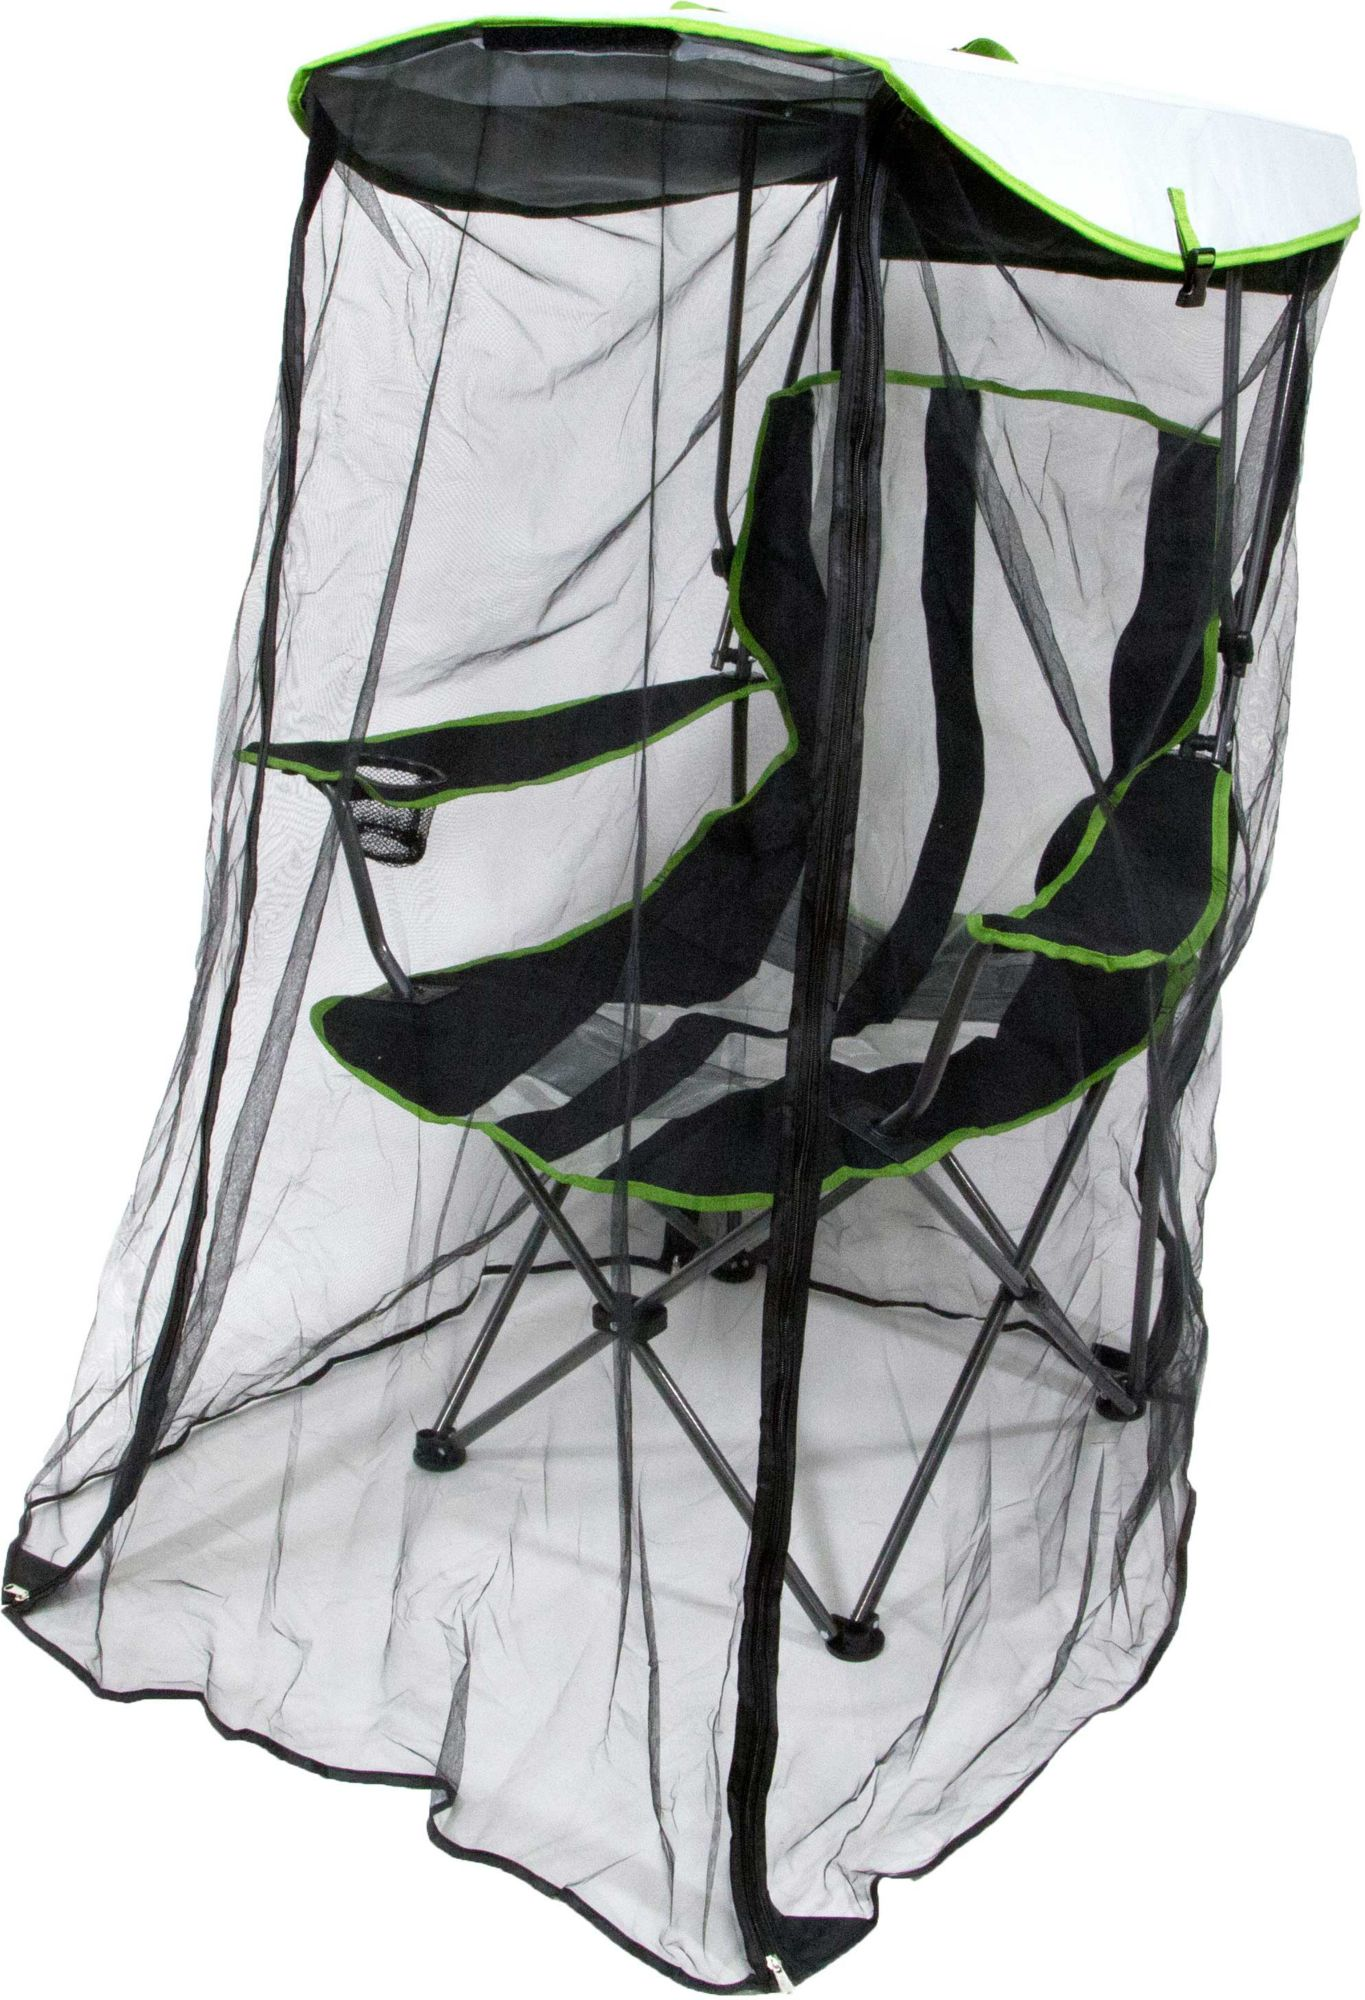 Product Image · Kelsyus Original Canopy Chair with Bug Net  sc 1 st  DICKu0027S Sporting Goods & Shade Coverage Folding u0026 Portable Chairs | Best Price Guarantee at ...